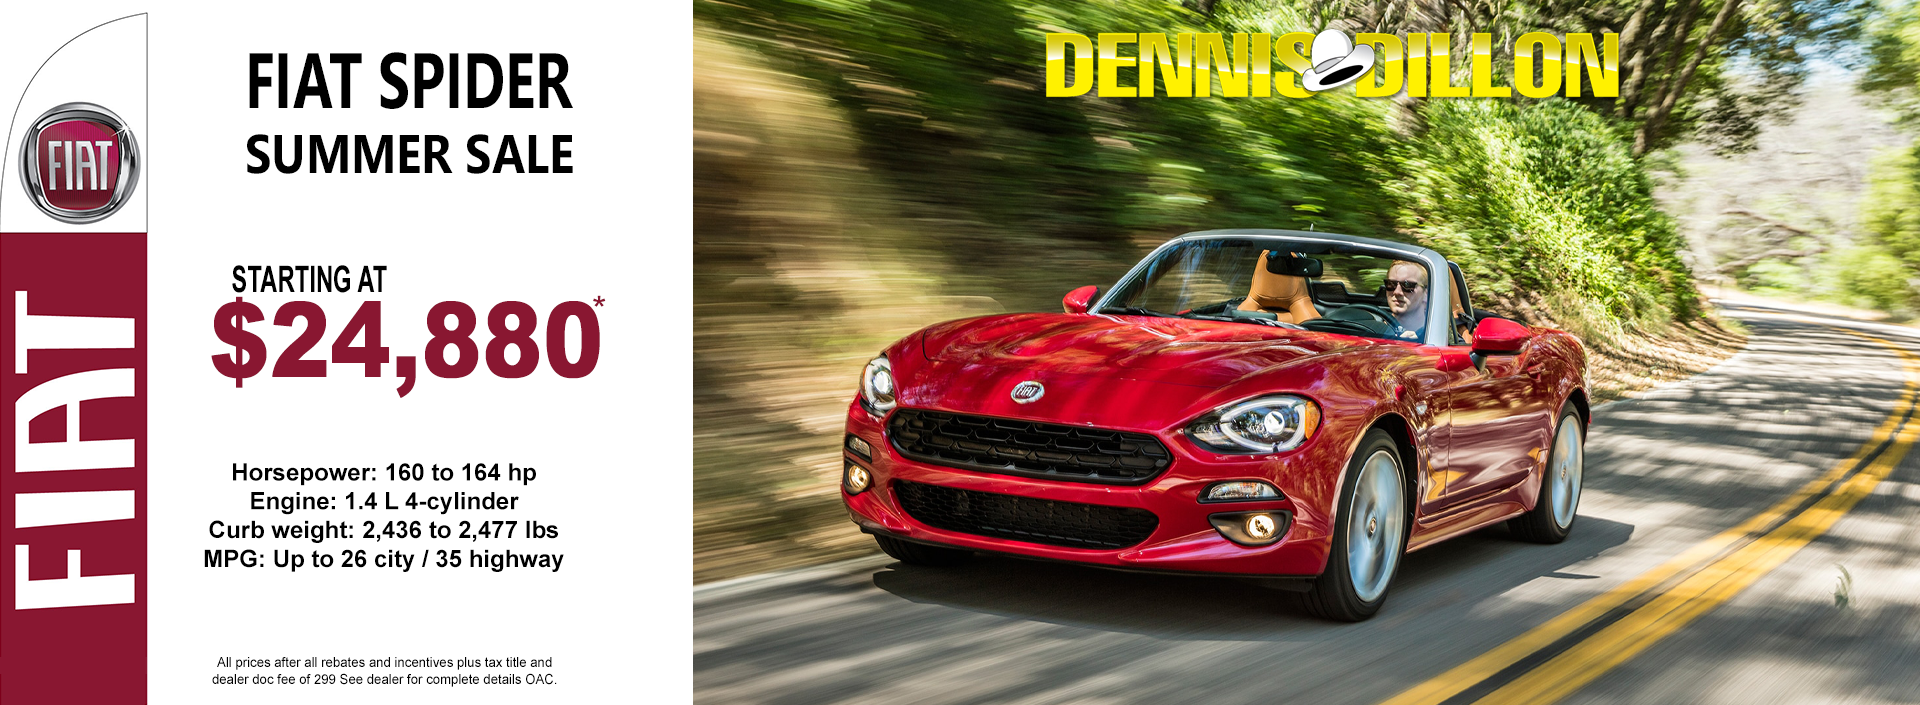 Dennis Dillon Fiat New And Pre Owned Car Dealer Service In Boise Id